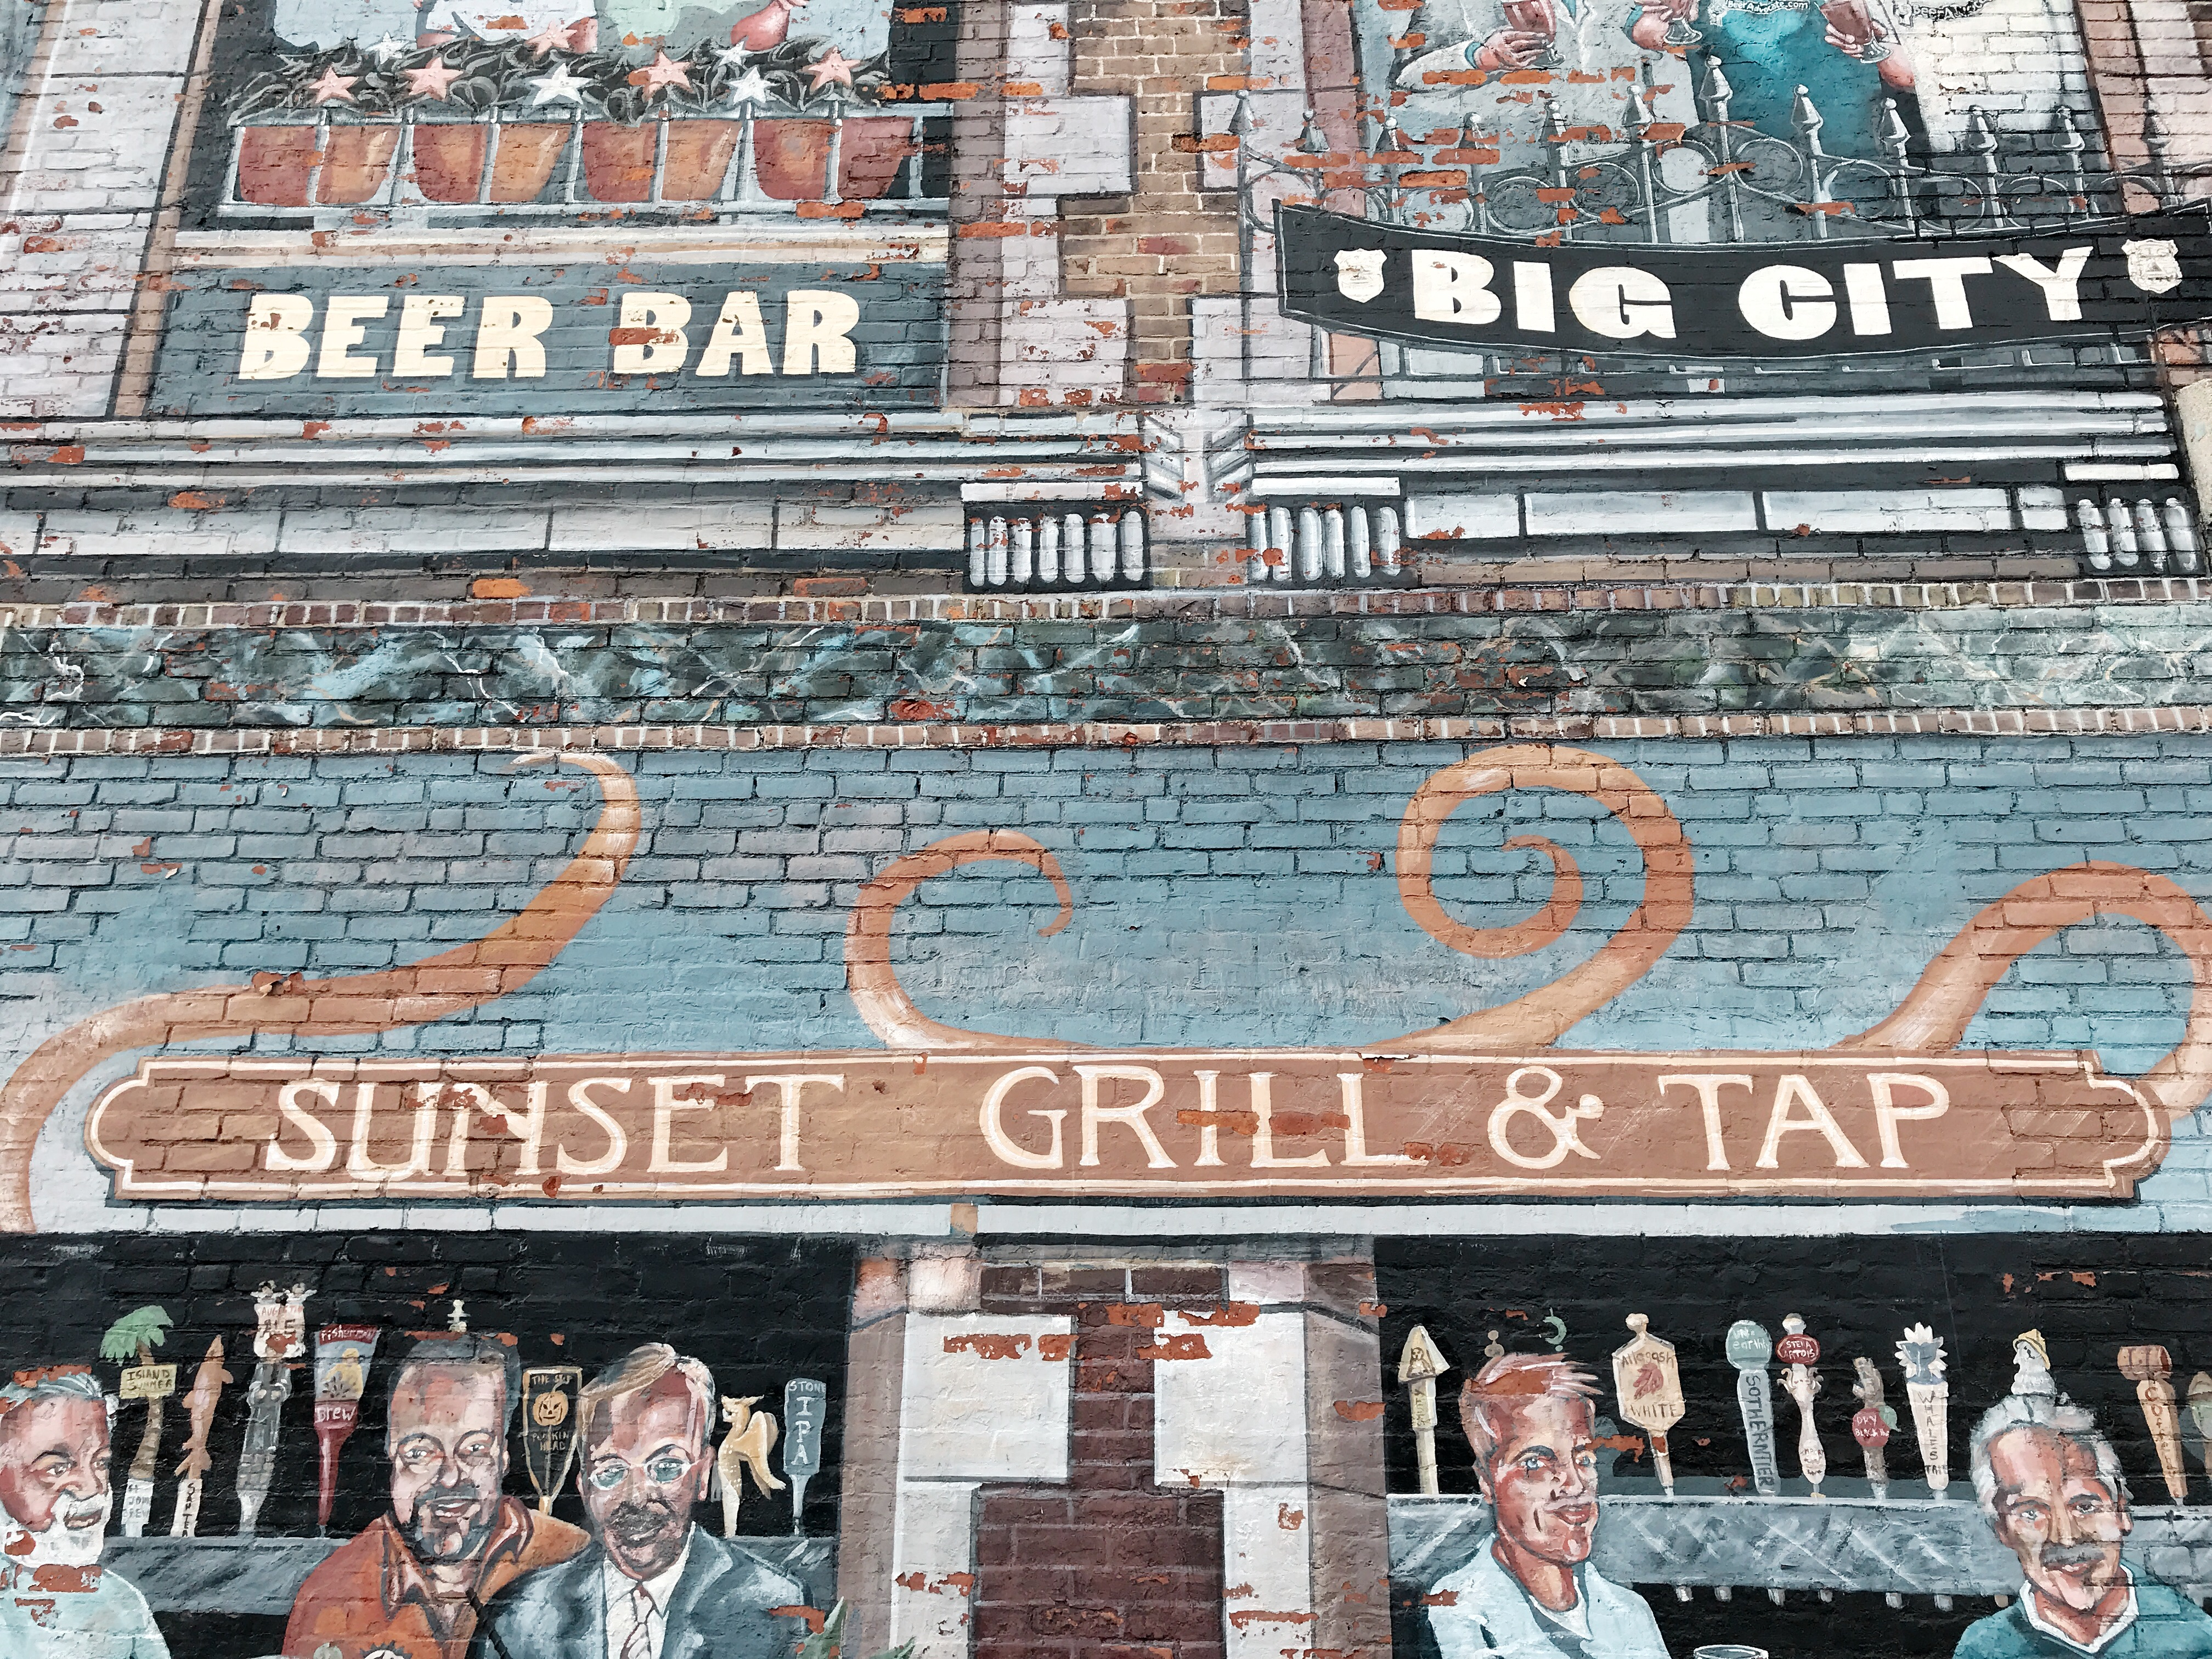 Sunset Grill & Tap